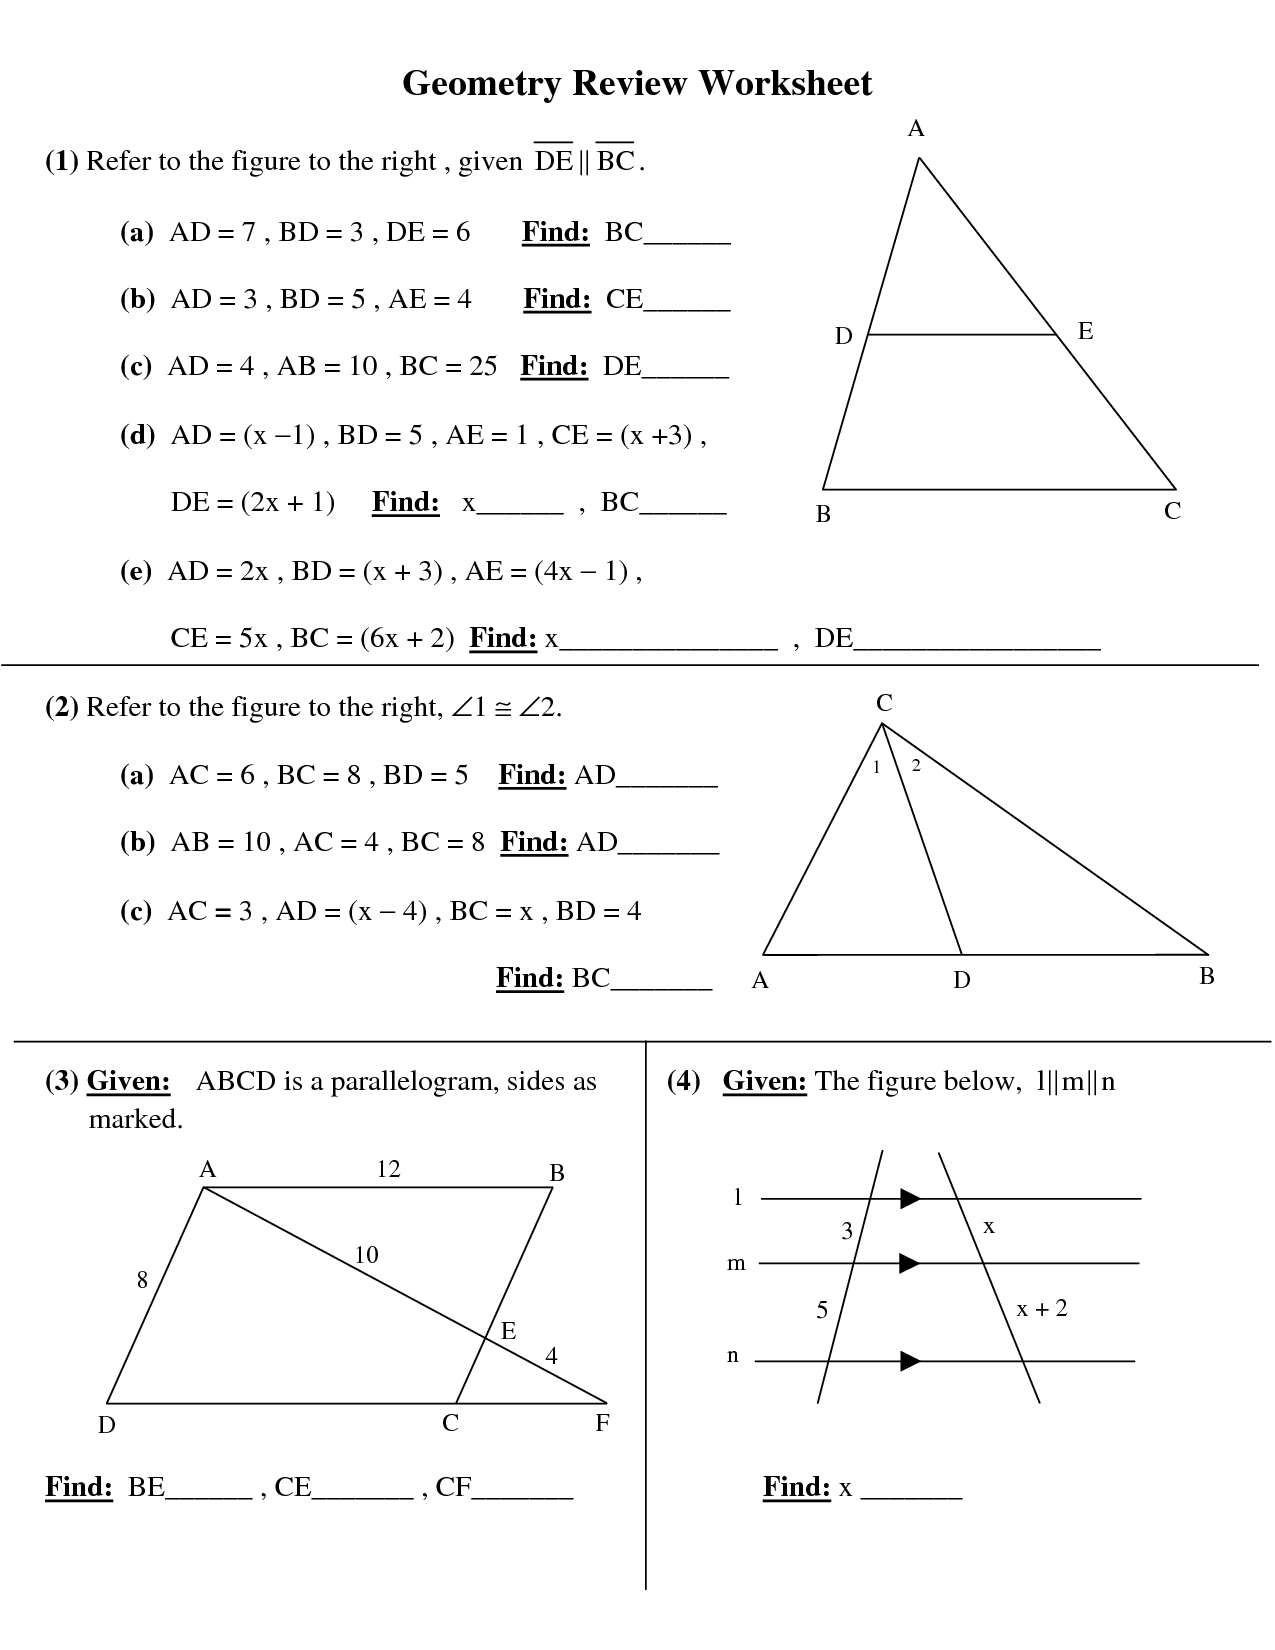 Worksheets Geometry Worksheets 10th Grade 7 best images of 10th grade geometry worksheets printable via high school worksheets